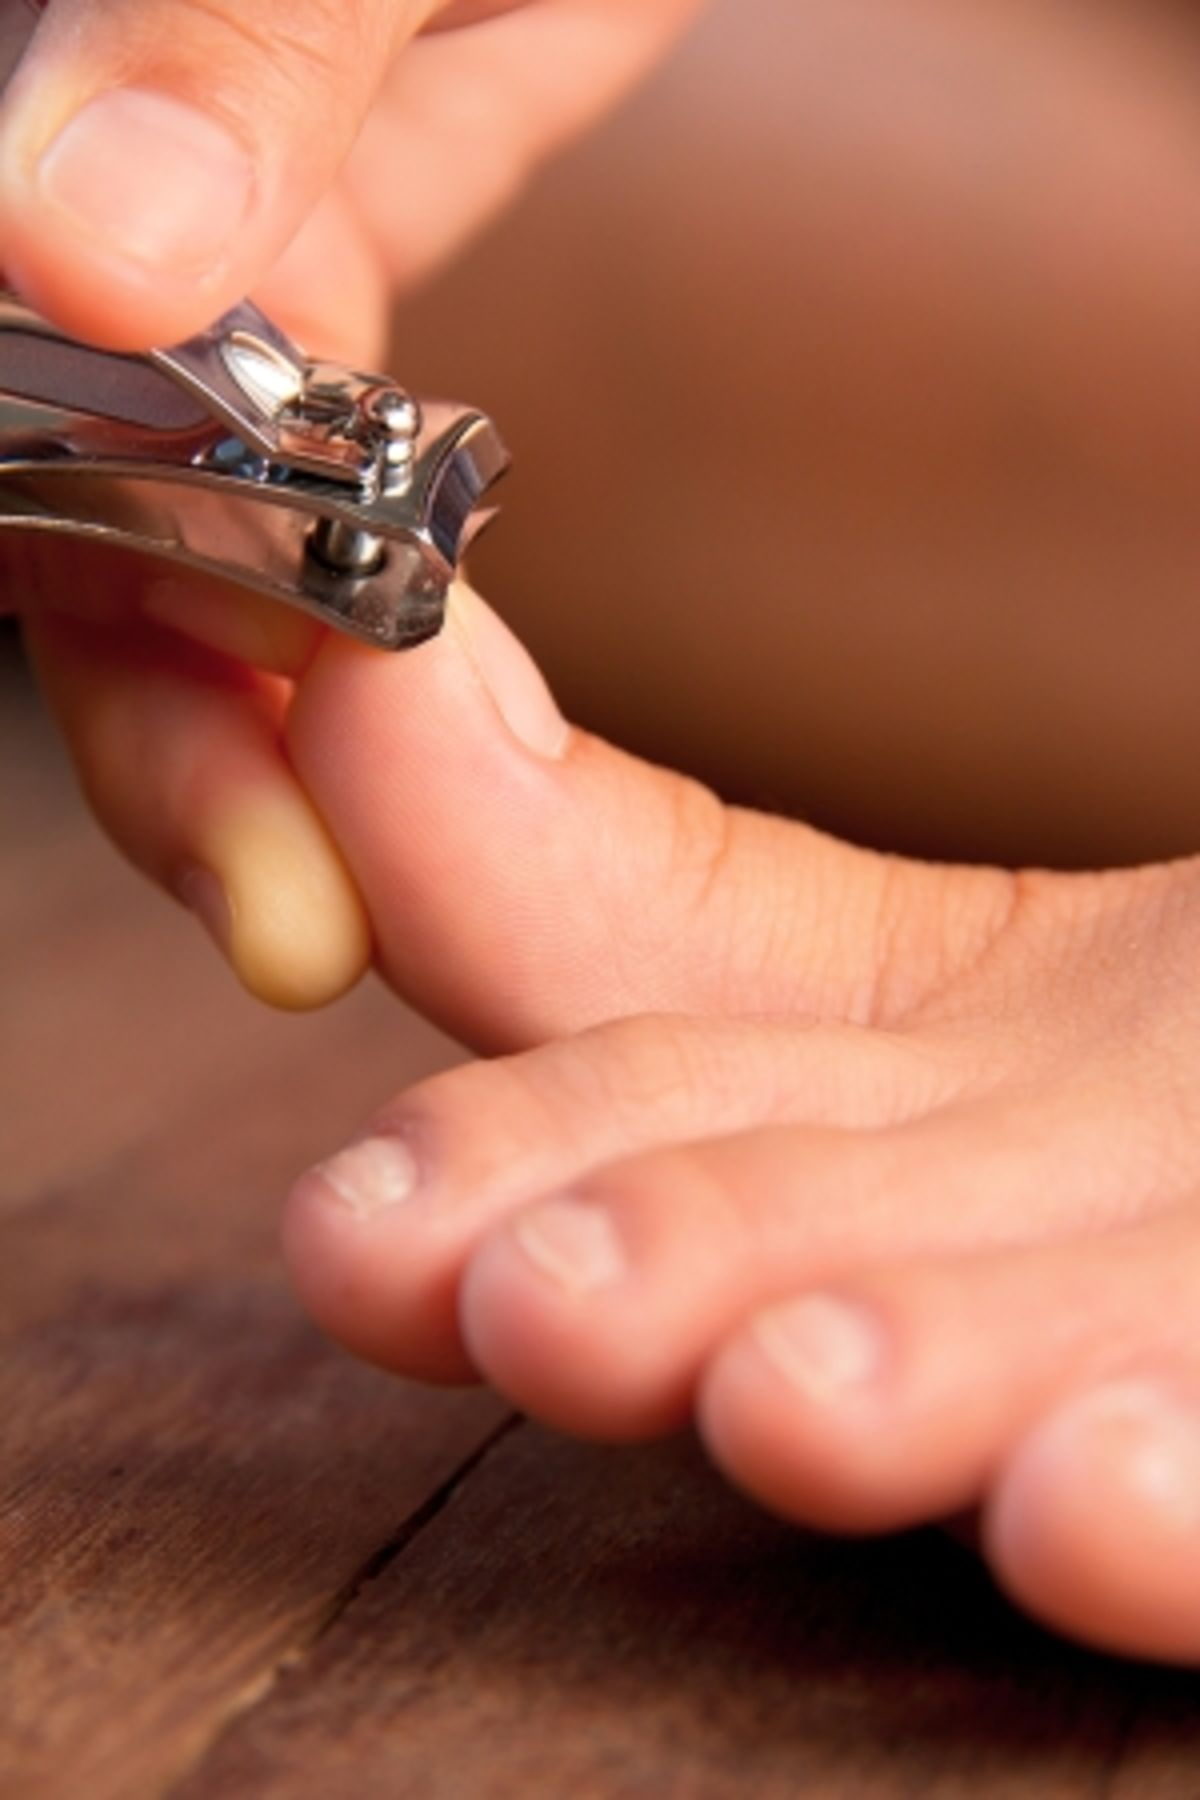 Who Will Clip Your Toenails When You Cannot? | Psychology Today